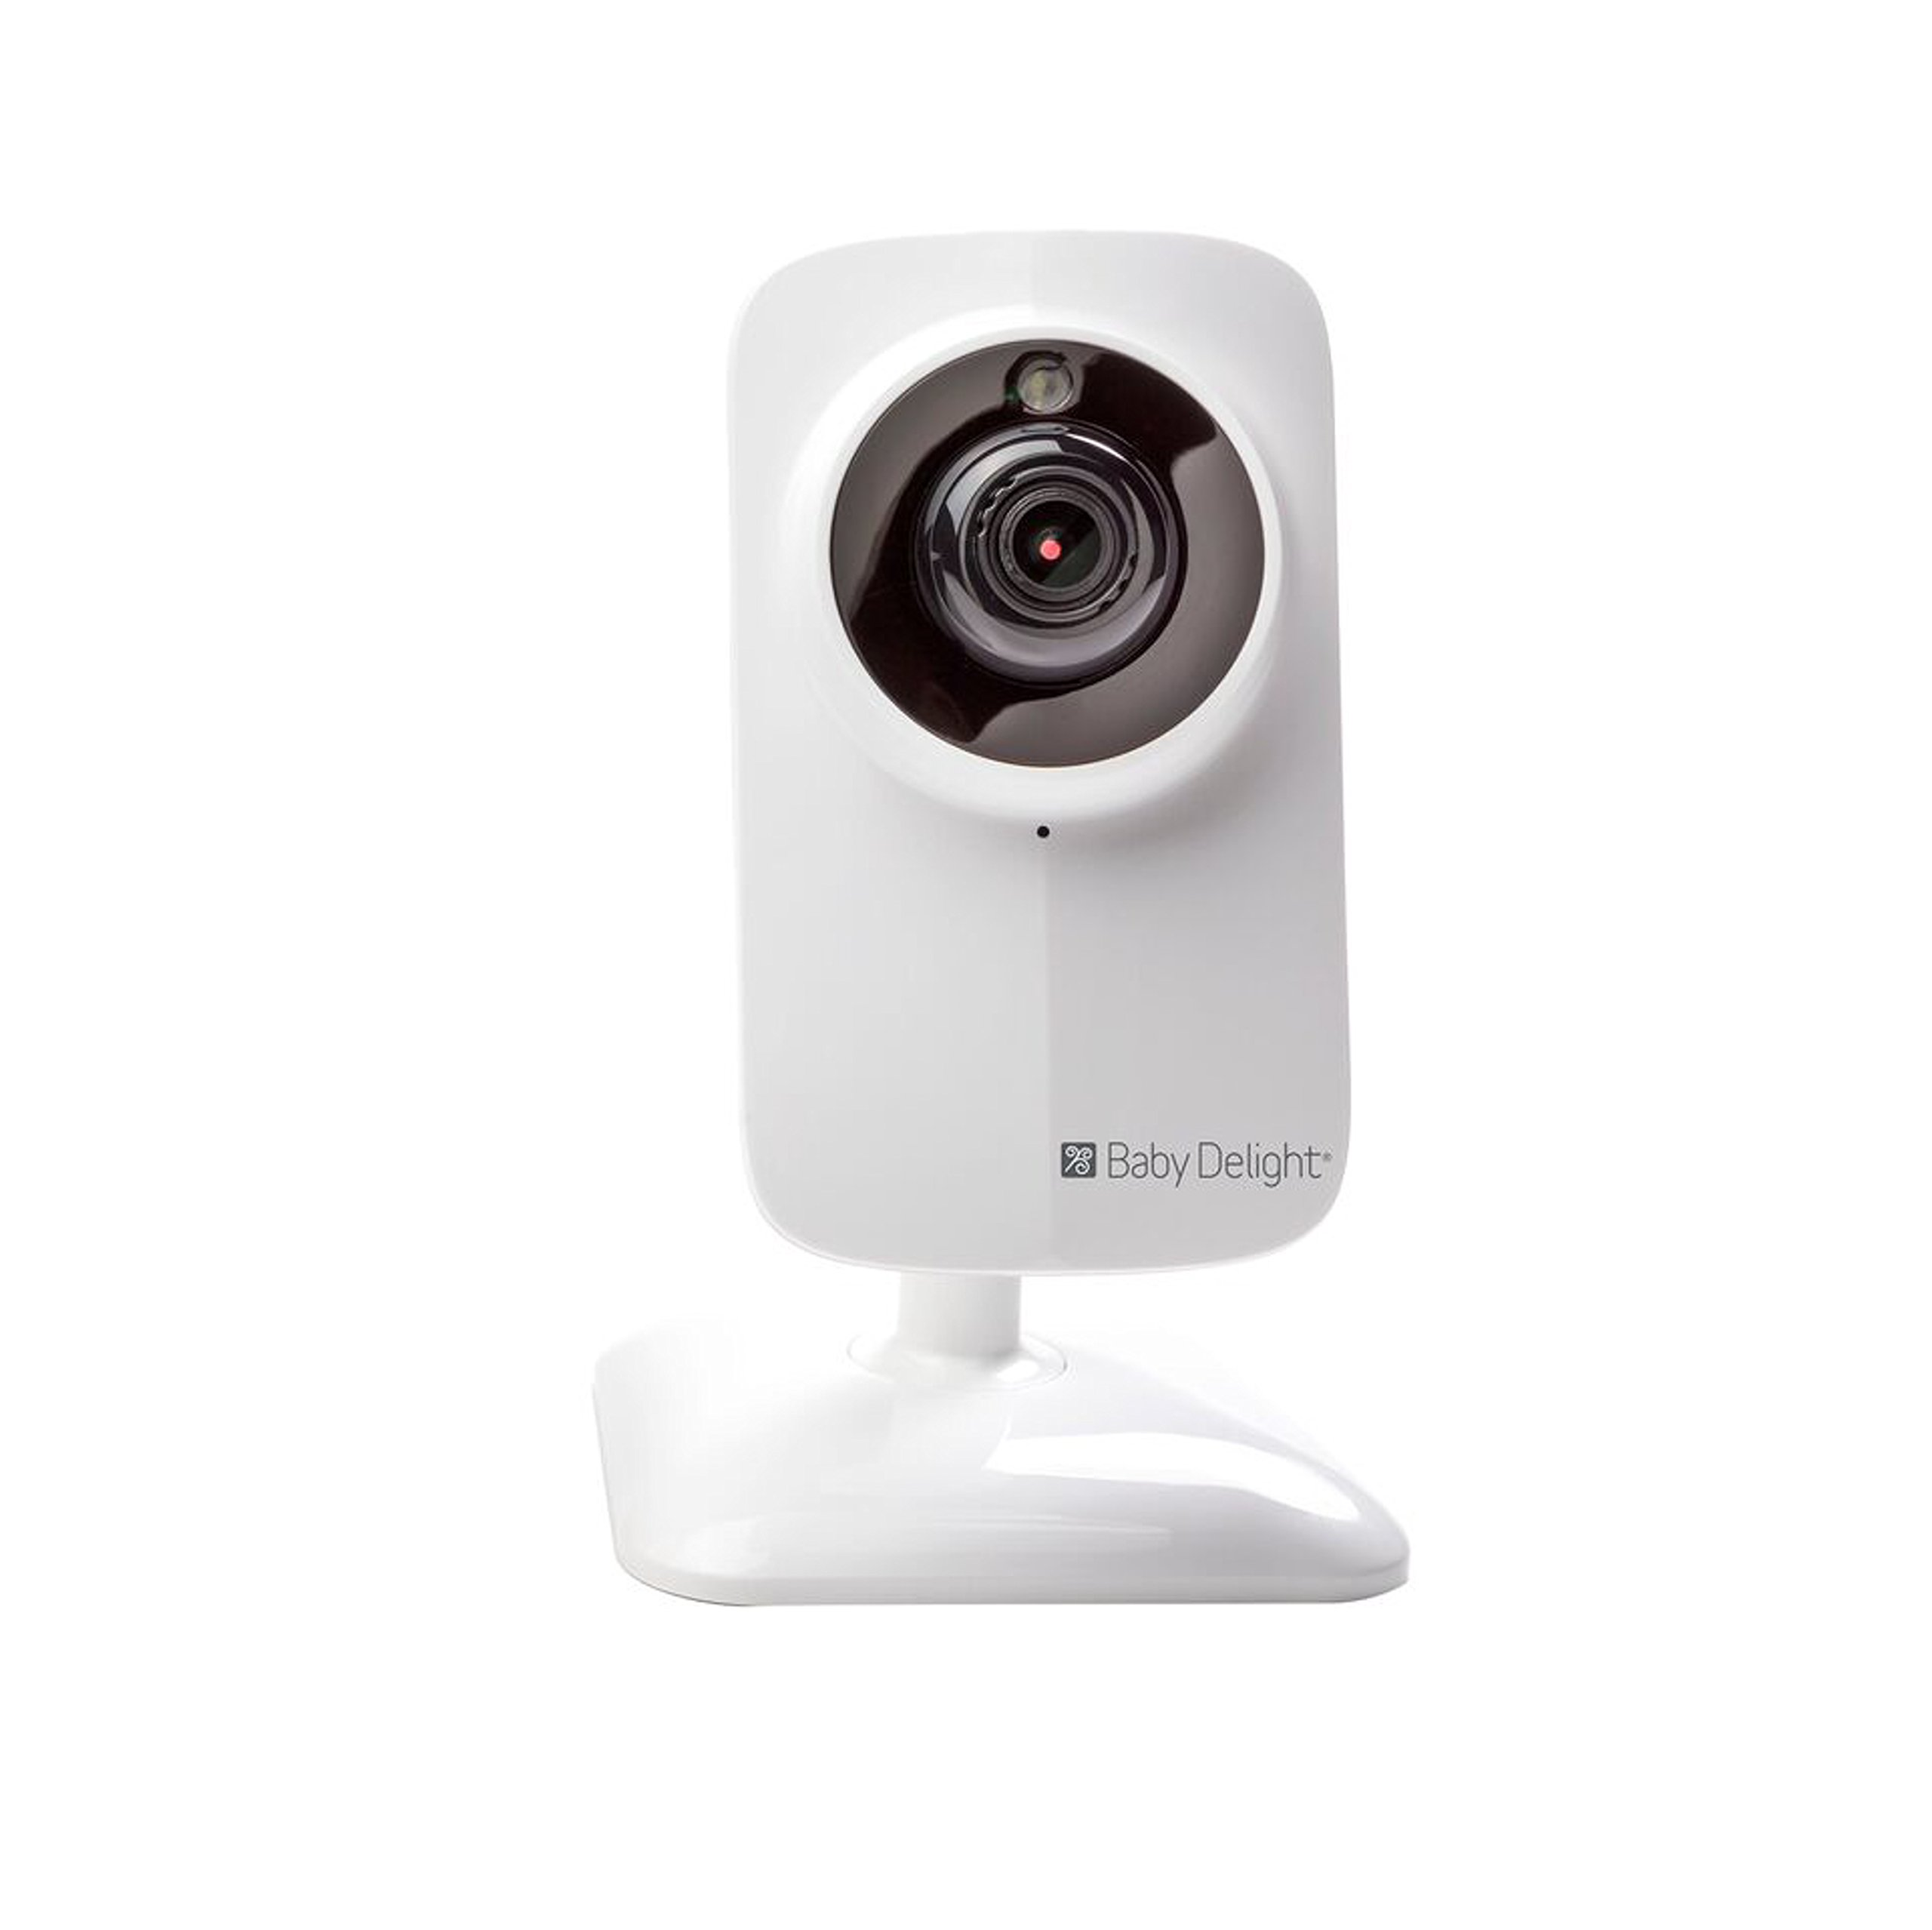 Baby Delight Snuggle Nest HD WiFi Camera to use with a Smartphone | Real-Time Baby Movement and Positioning | Simple and Secure with WiFi | Crisp Night Vision